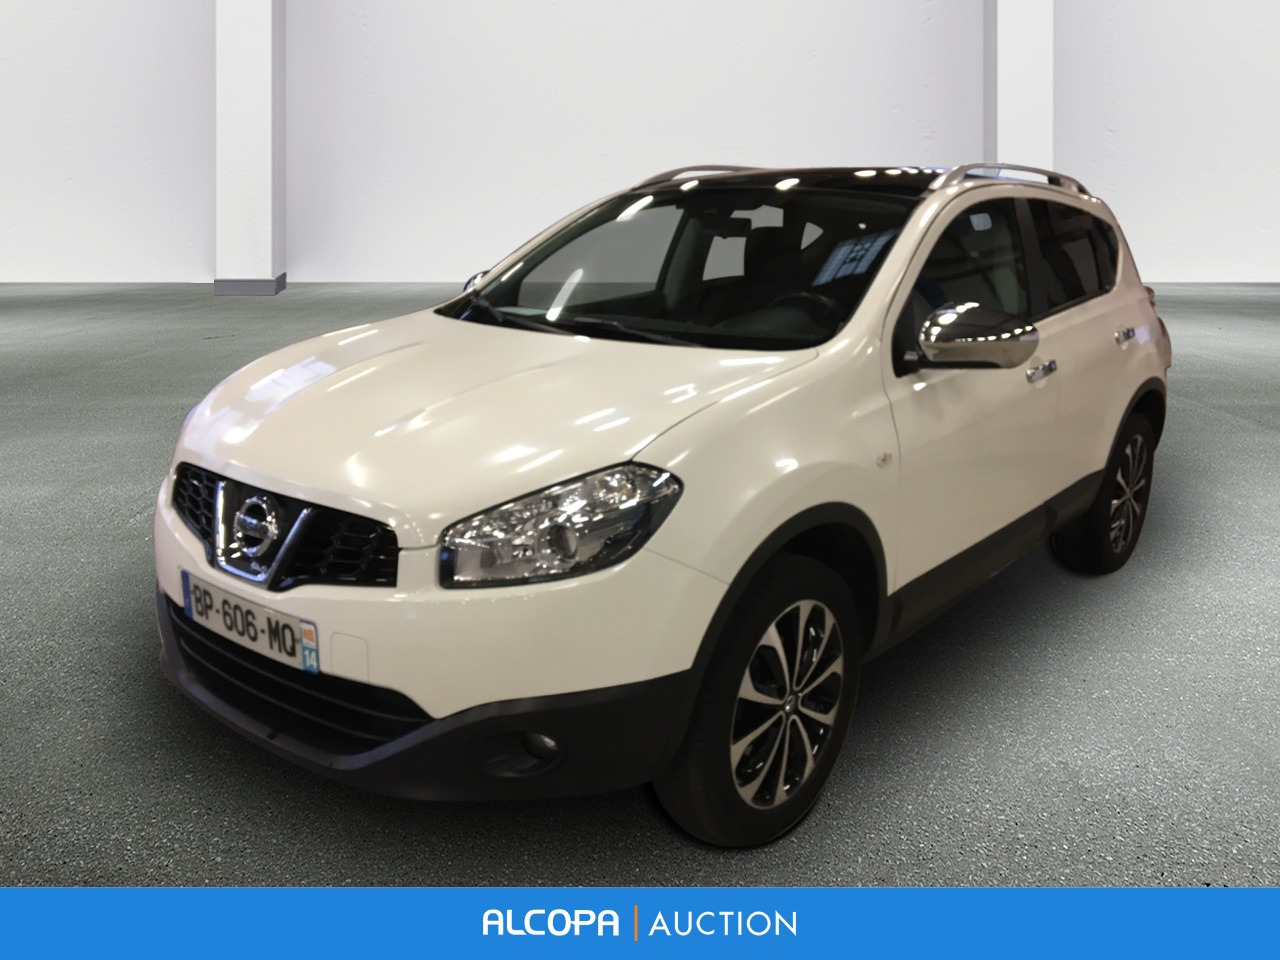 nissan qashqai qashqai 1 5 dci 110 fap connect edition. Black Bedroom Furniture Sets. Home Design Ideas